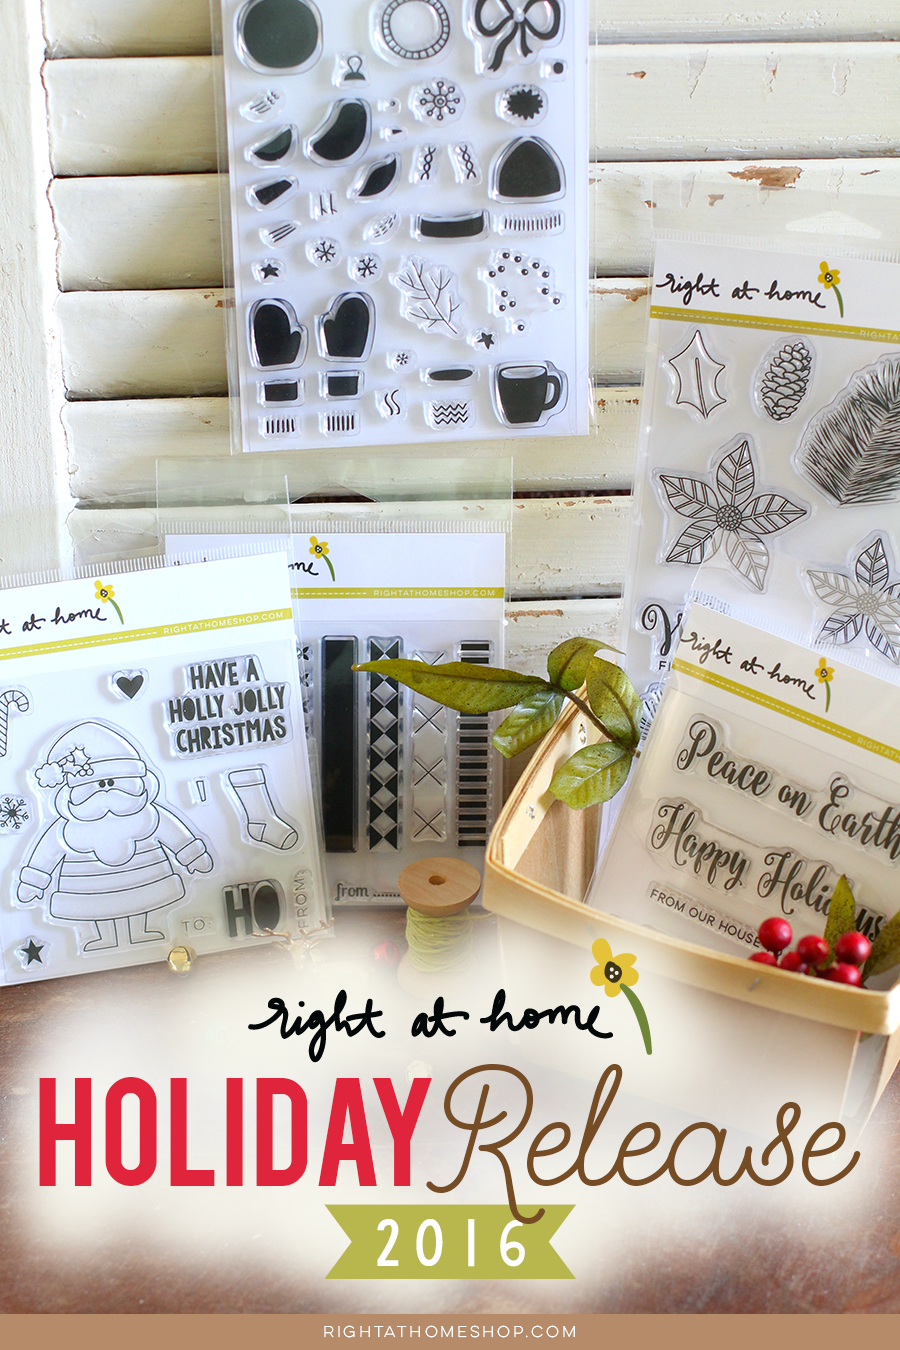 Right at Home Stamps Holiday Release Overview by KraftinKate // rightathomeshop.com/blog